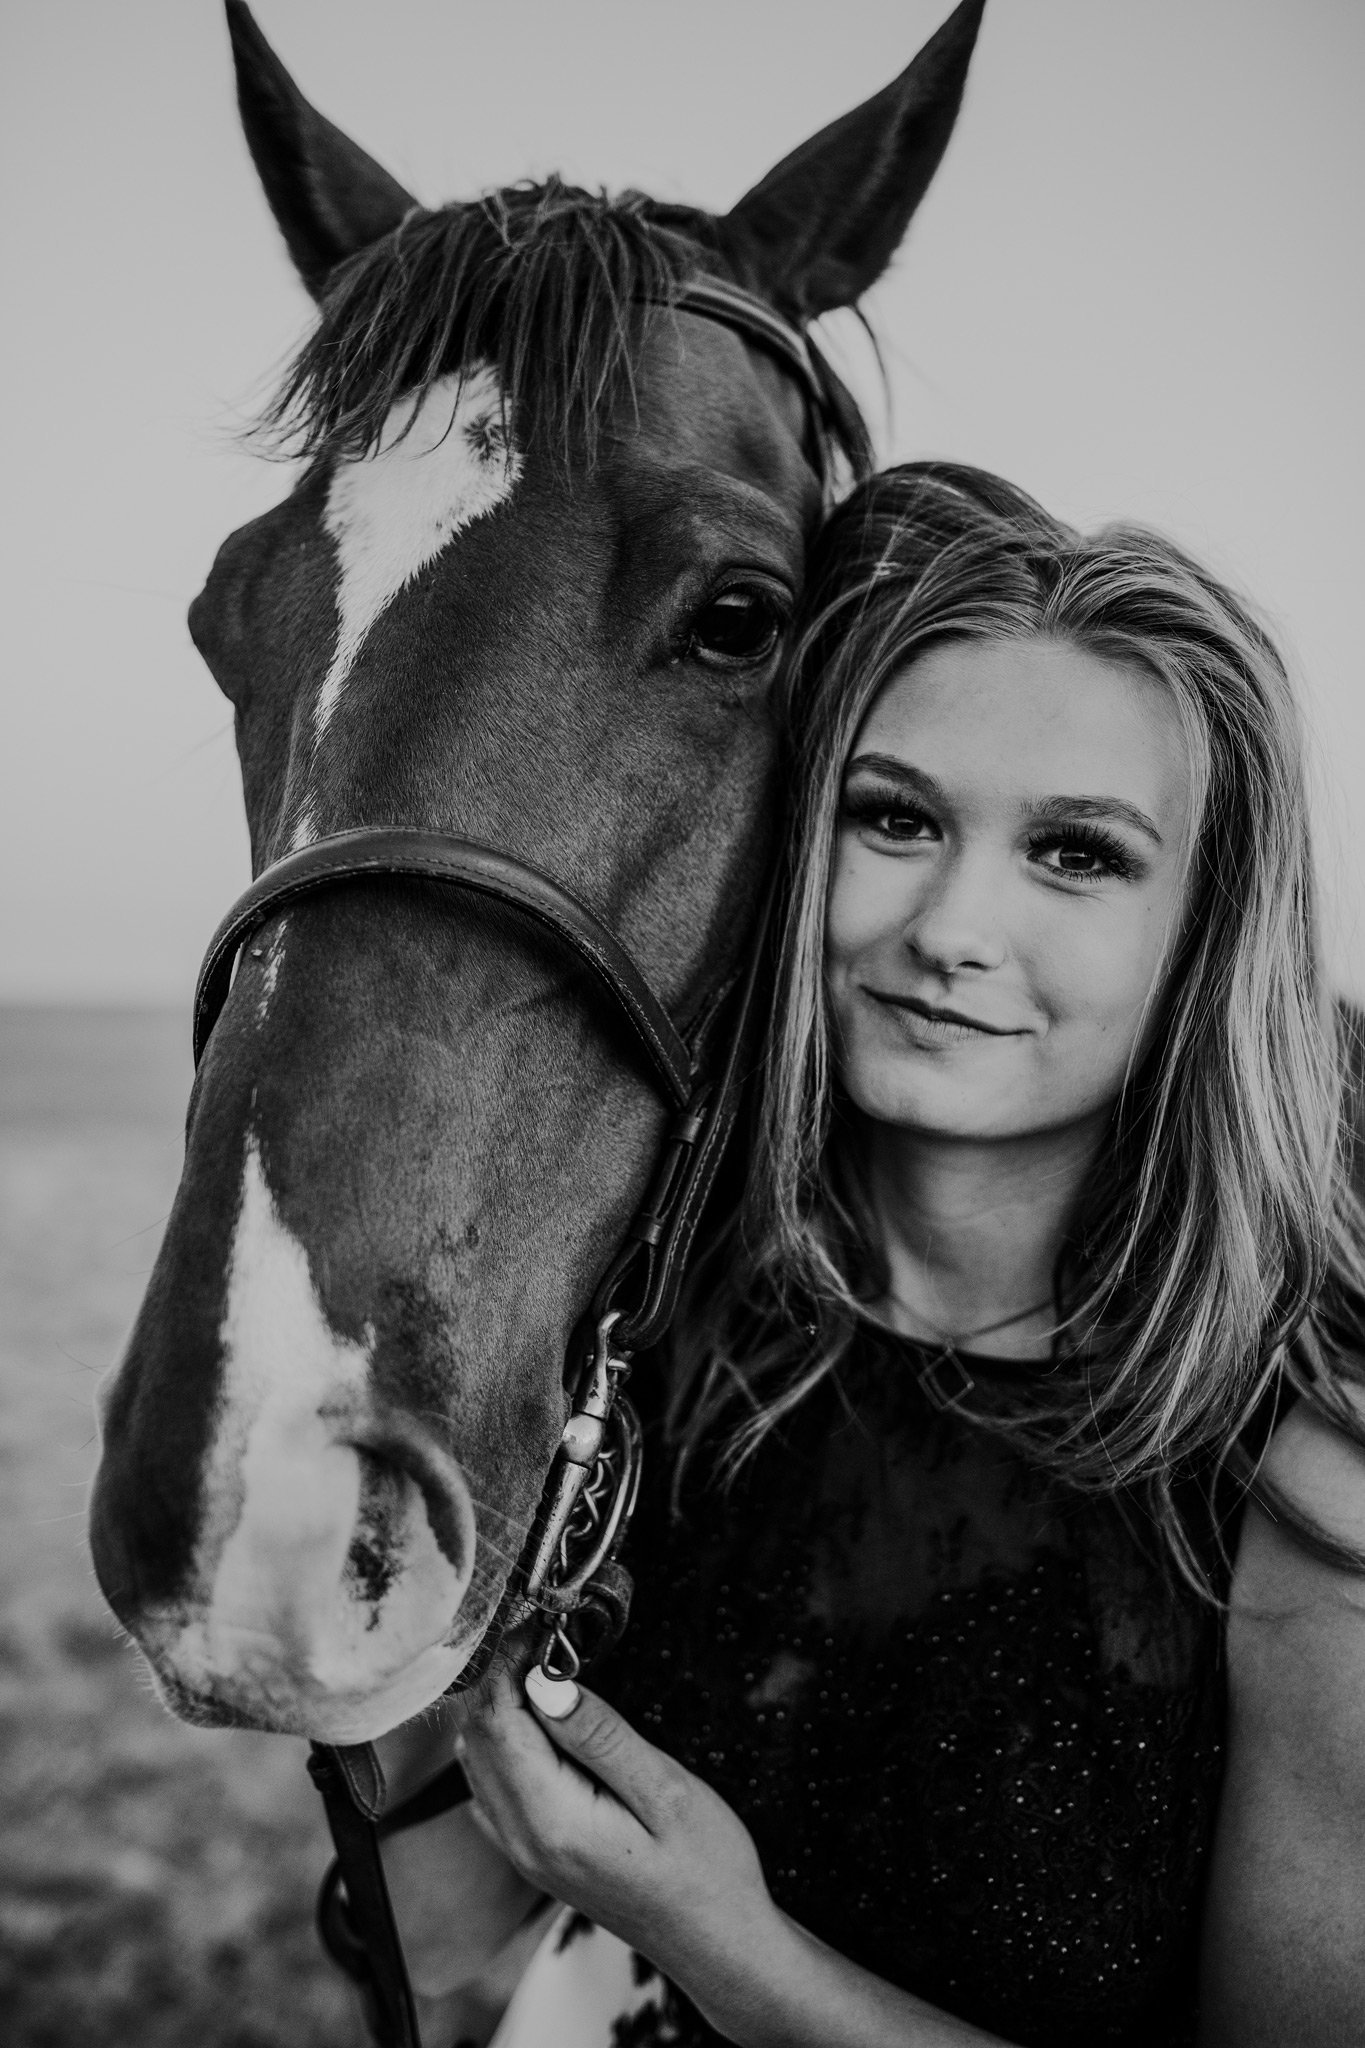 girl standing beside horse closeup black and white